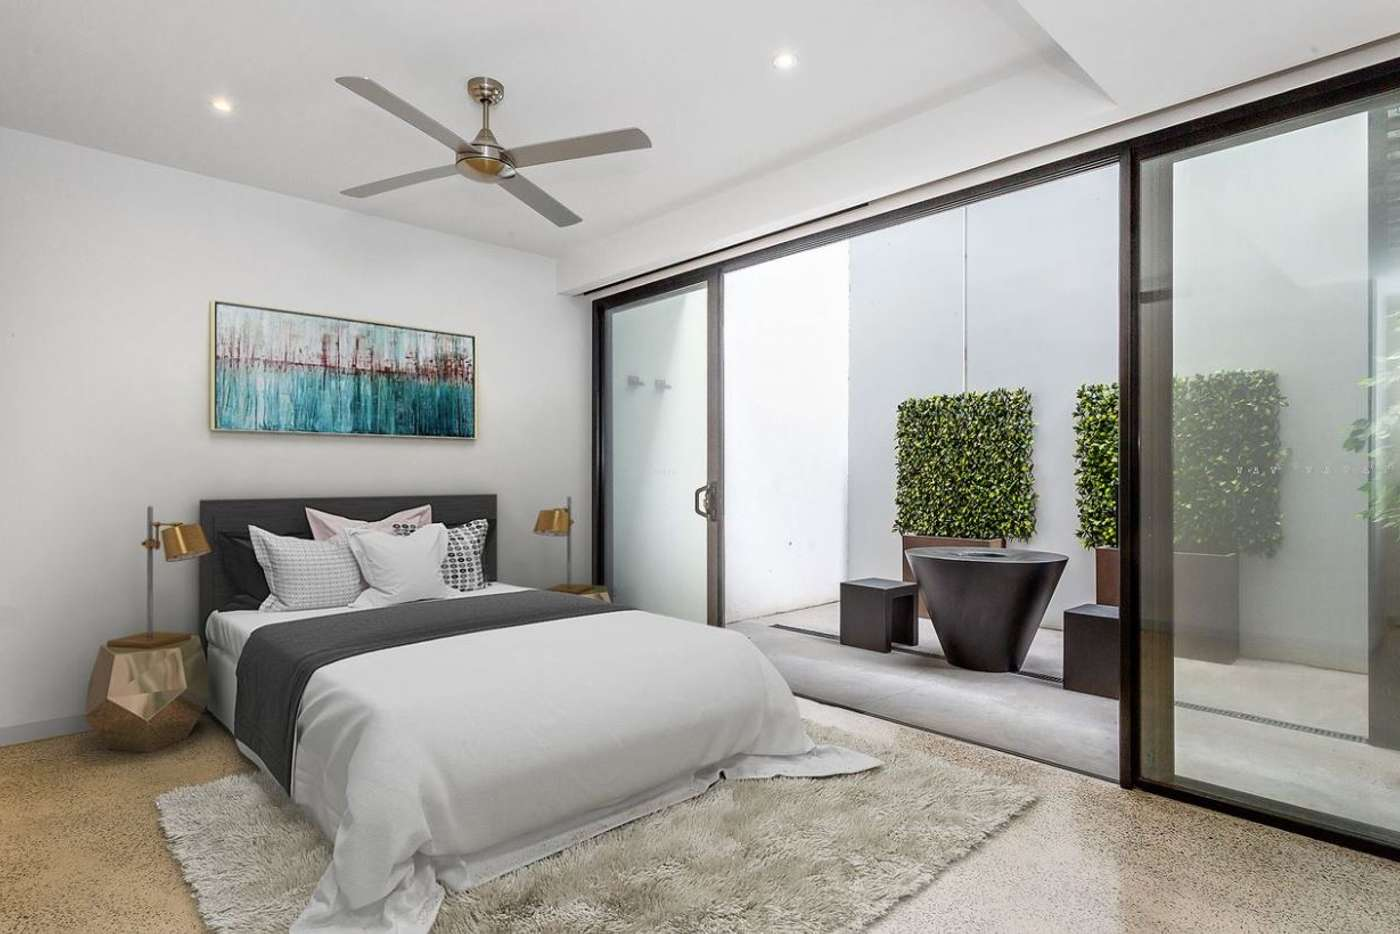 Fifth view of Homely house listing, 17B Balmoral Place, South Yarra VIC 3141